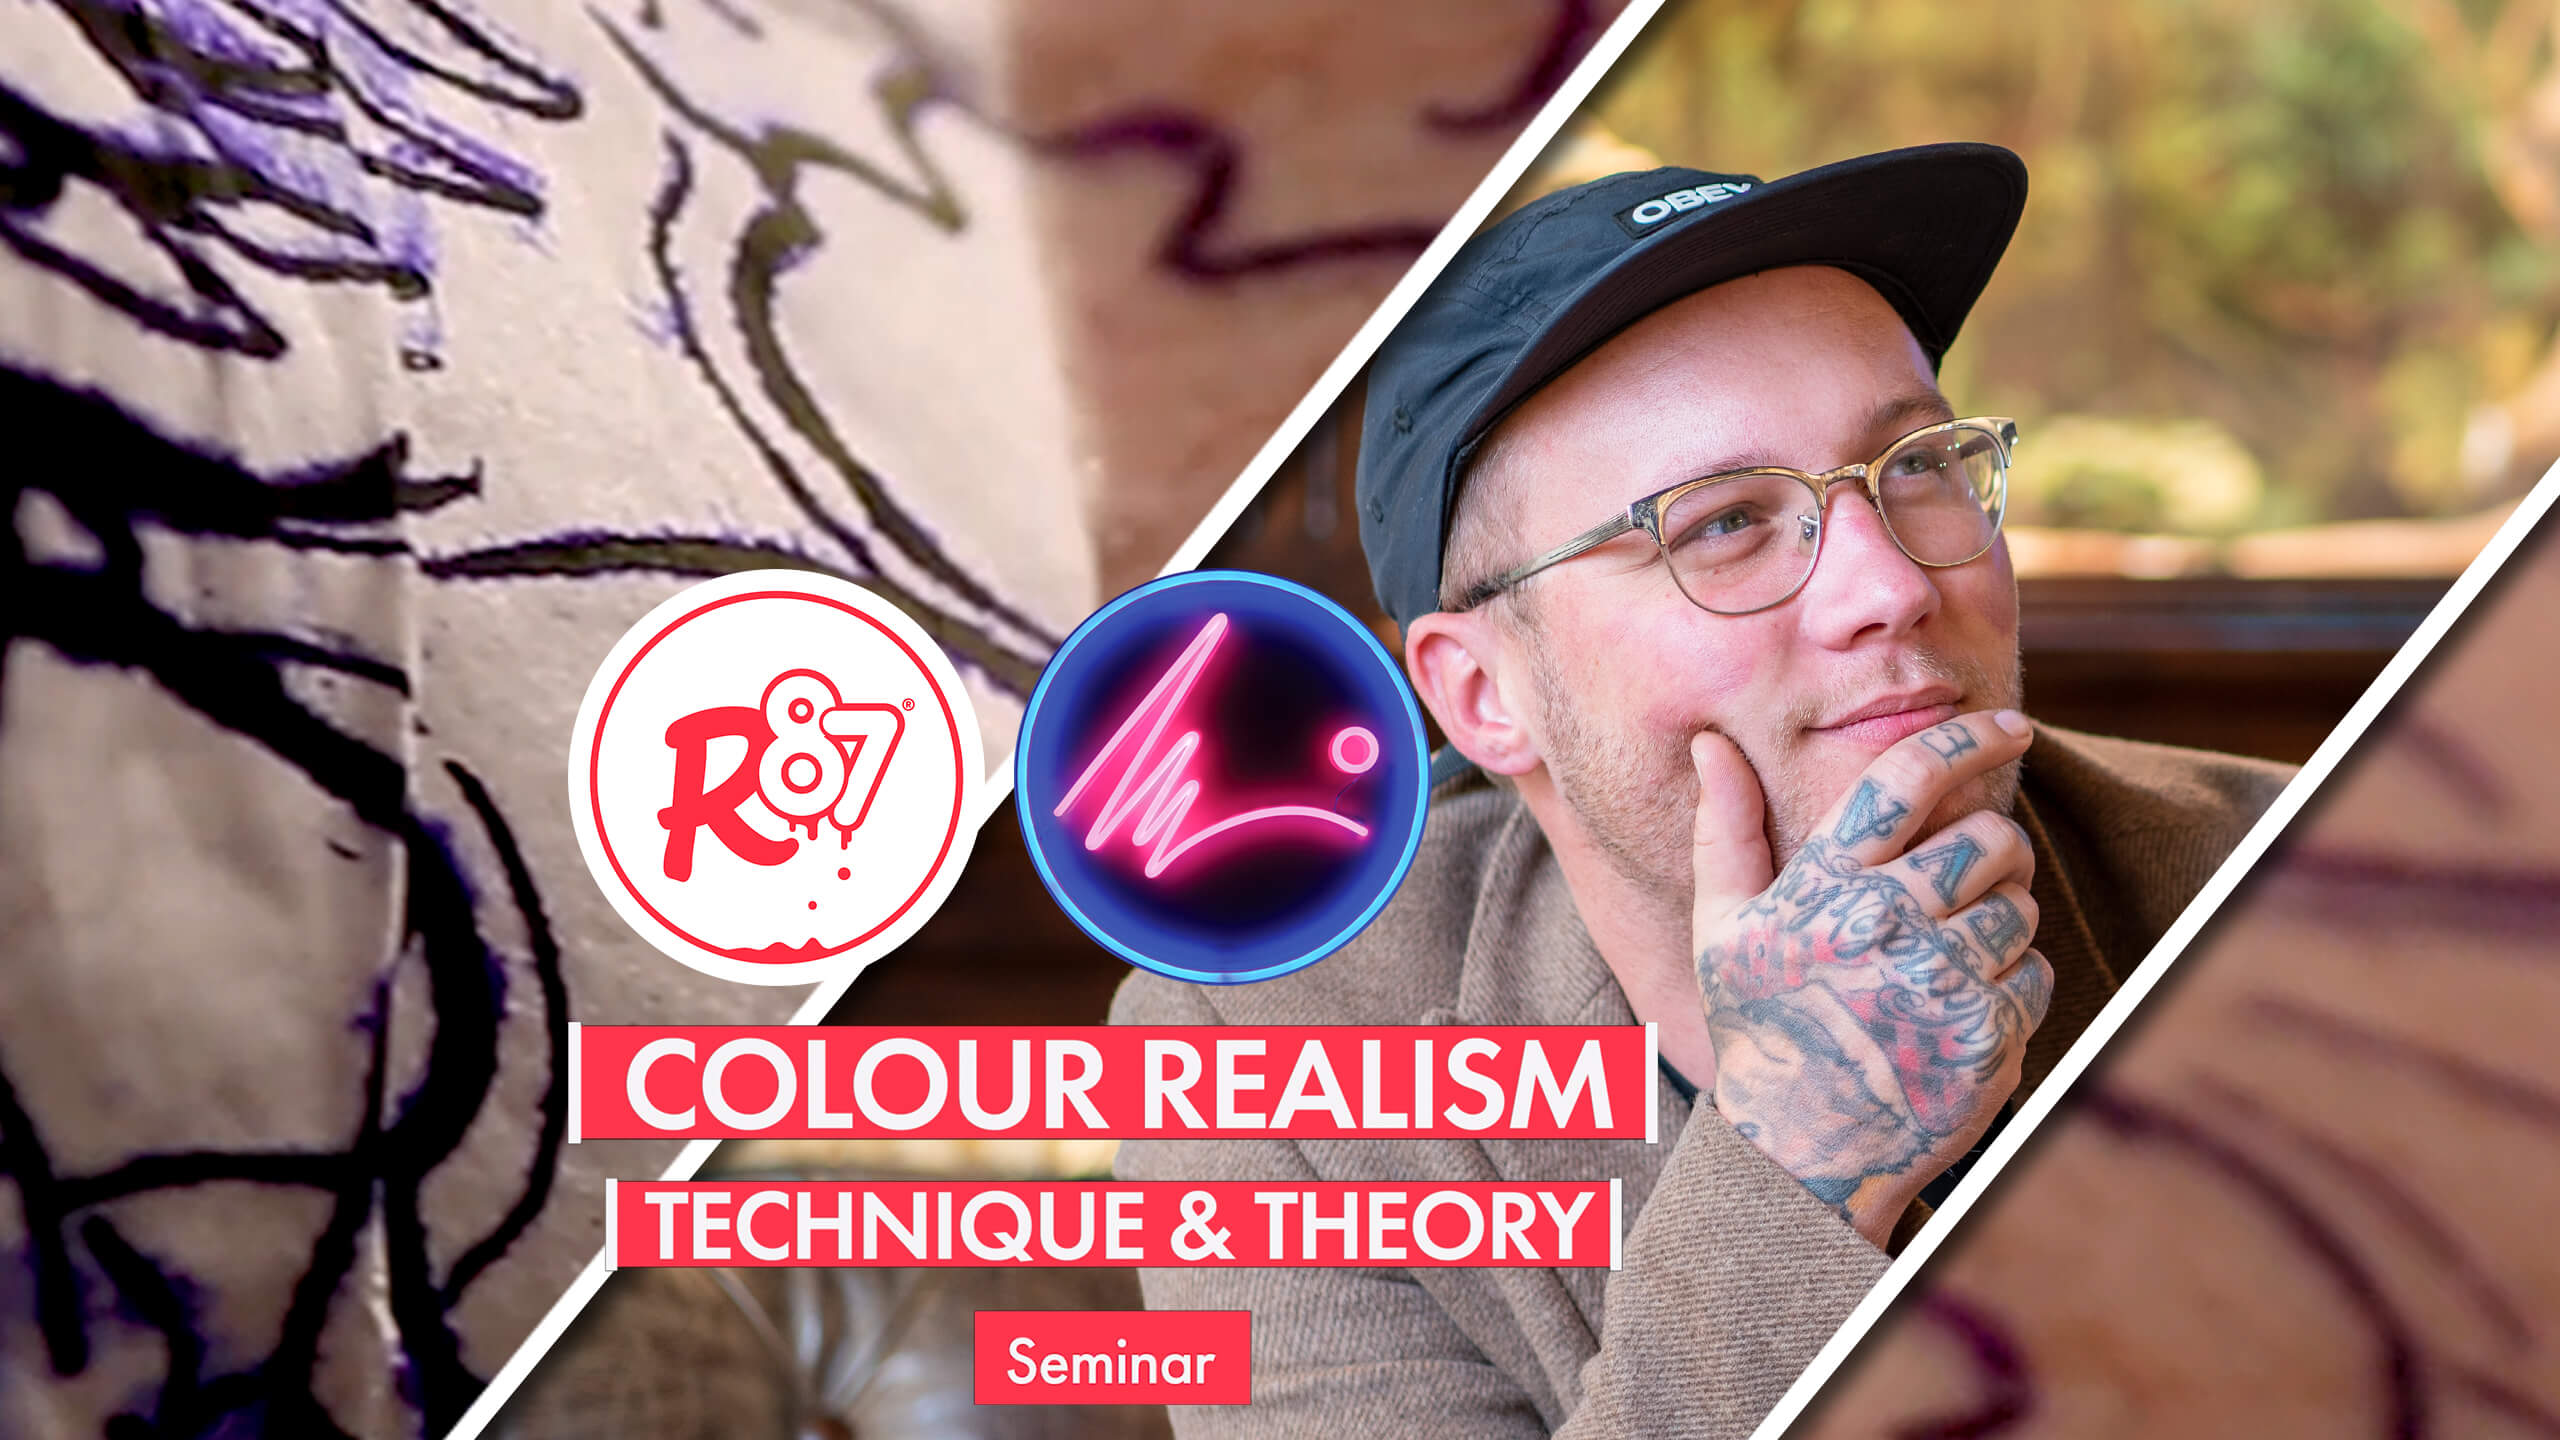 Colour Realism - Technique and Theory Seminar